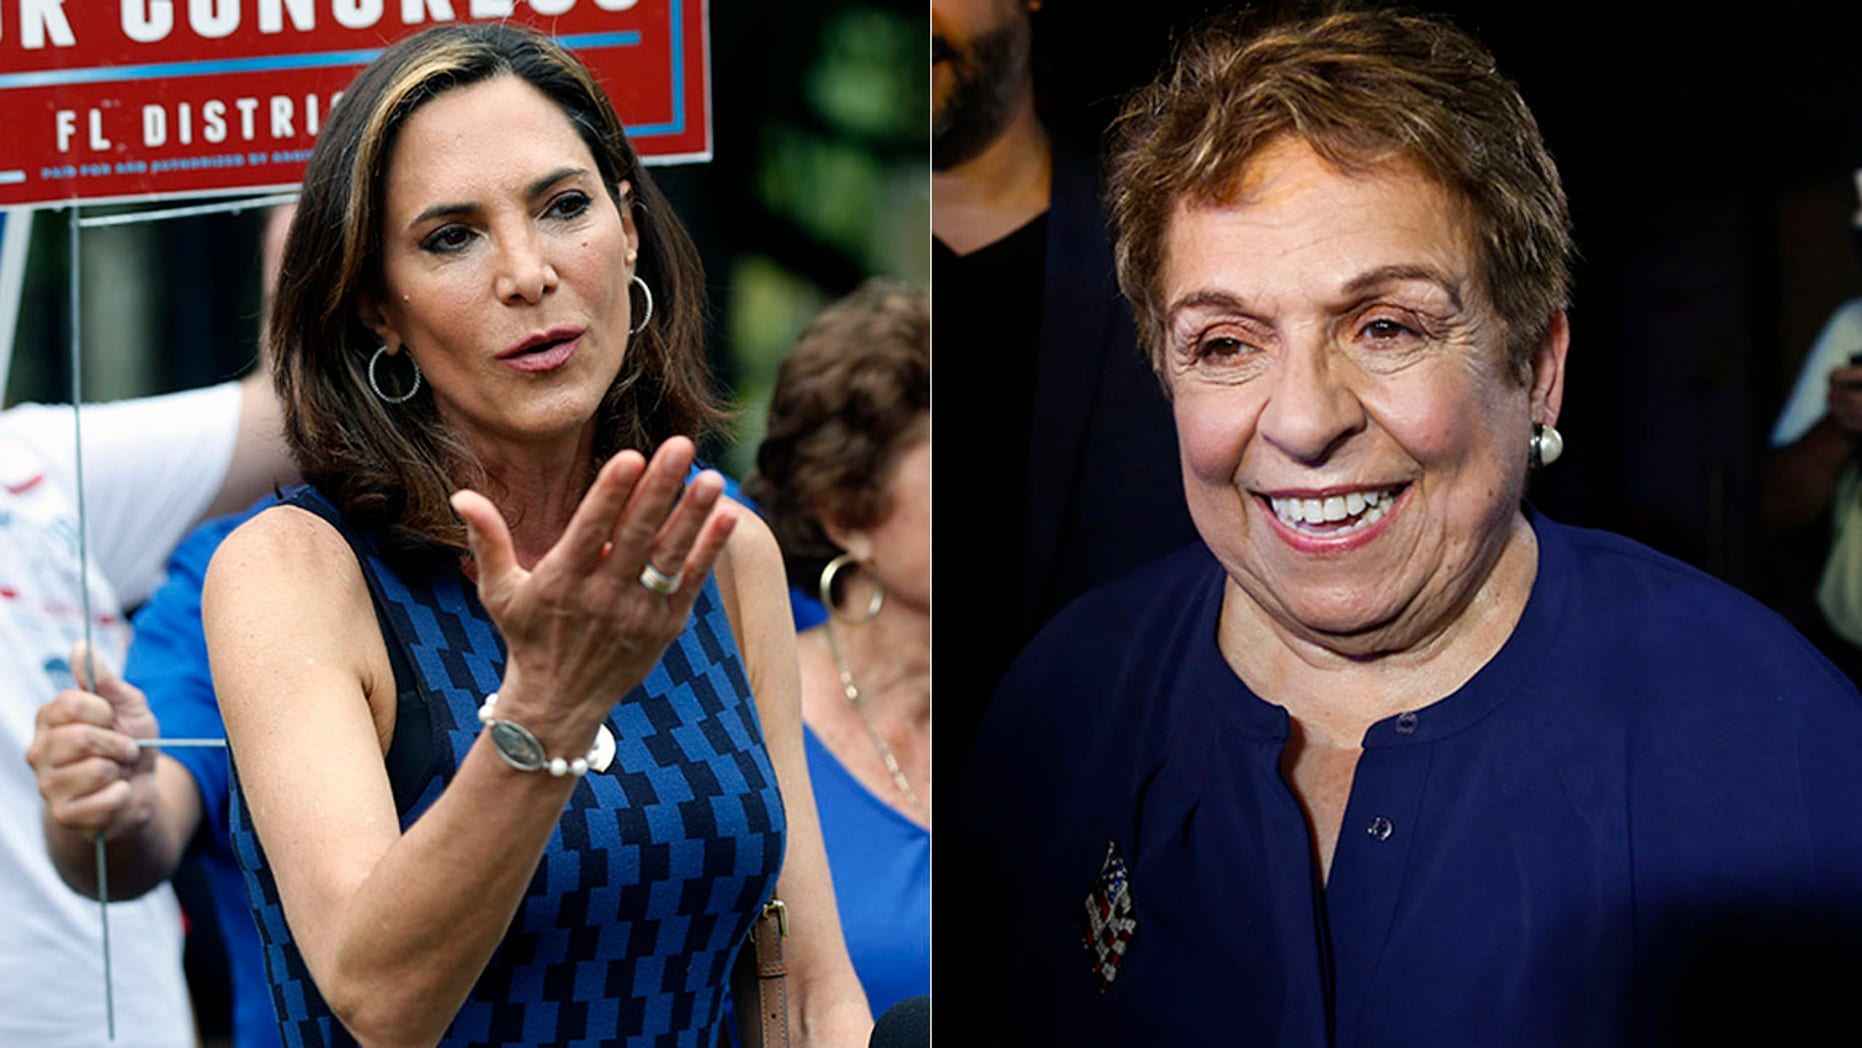 Donna Shalala, right, will face Maria Elvira Salazar for the right to represent Florida's 27th Congressional District in November.